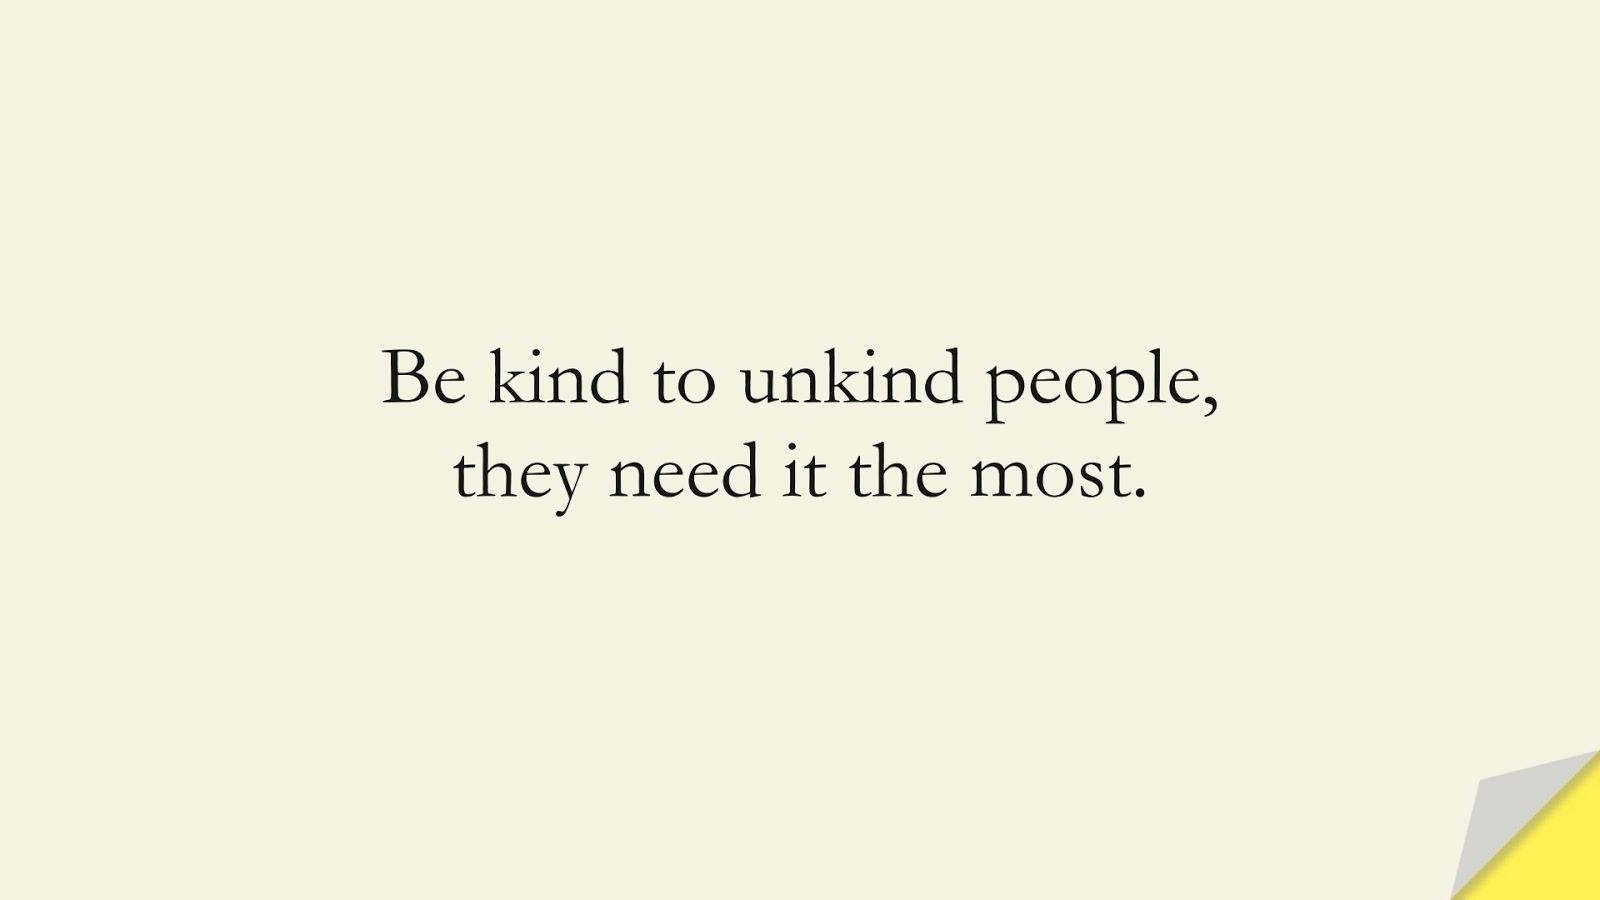 Be kind to unkind people, they need it the most.FALSE